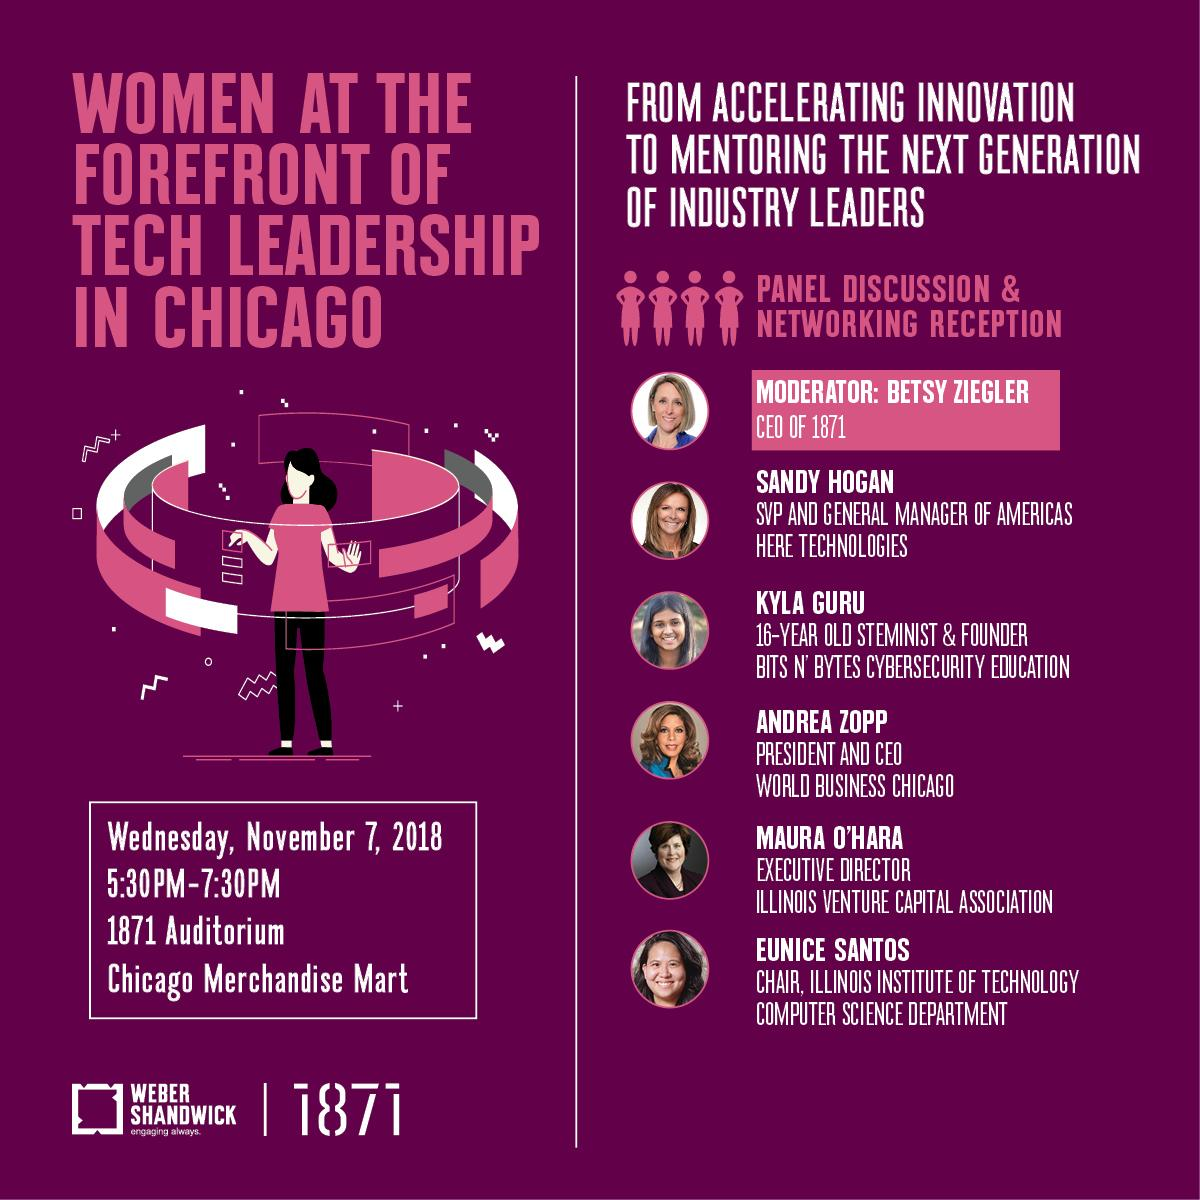 Women at the Forefront of Tech Leadership in Chicago